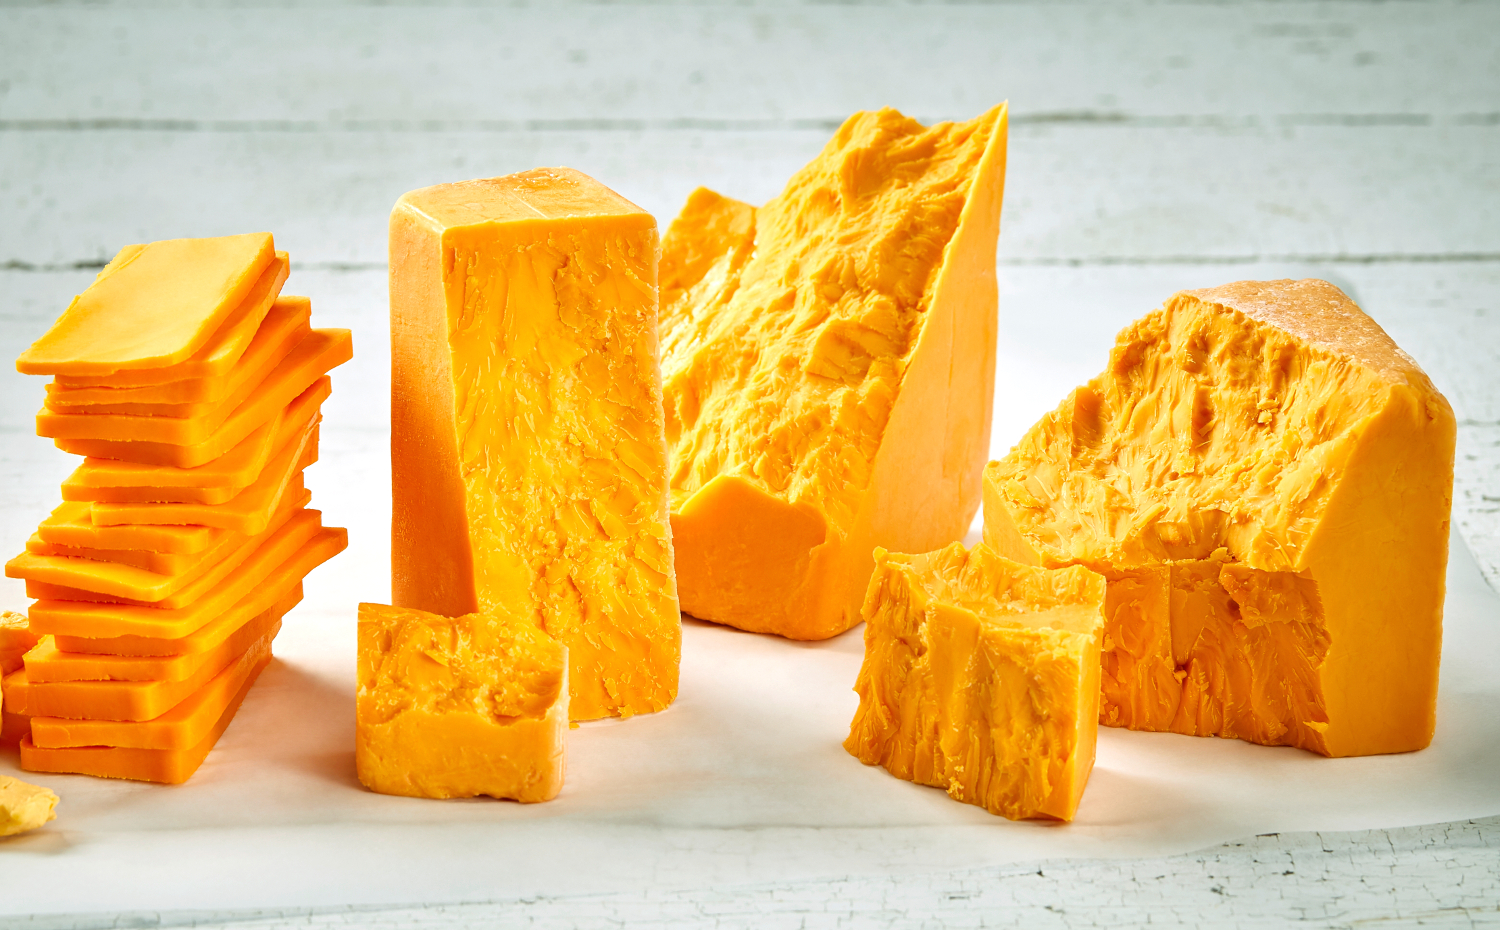 Assortment of cheddar cheese with blocks of various ages and slices